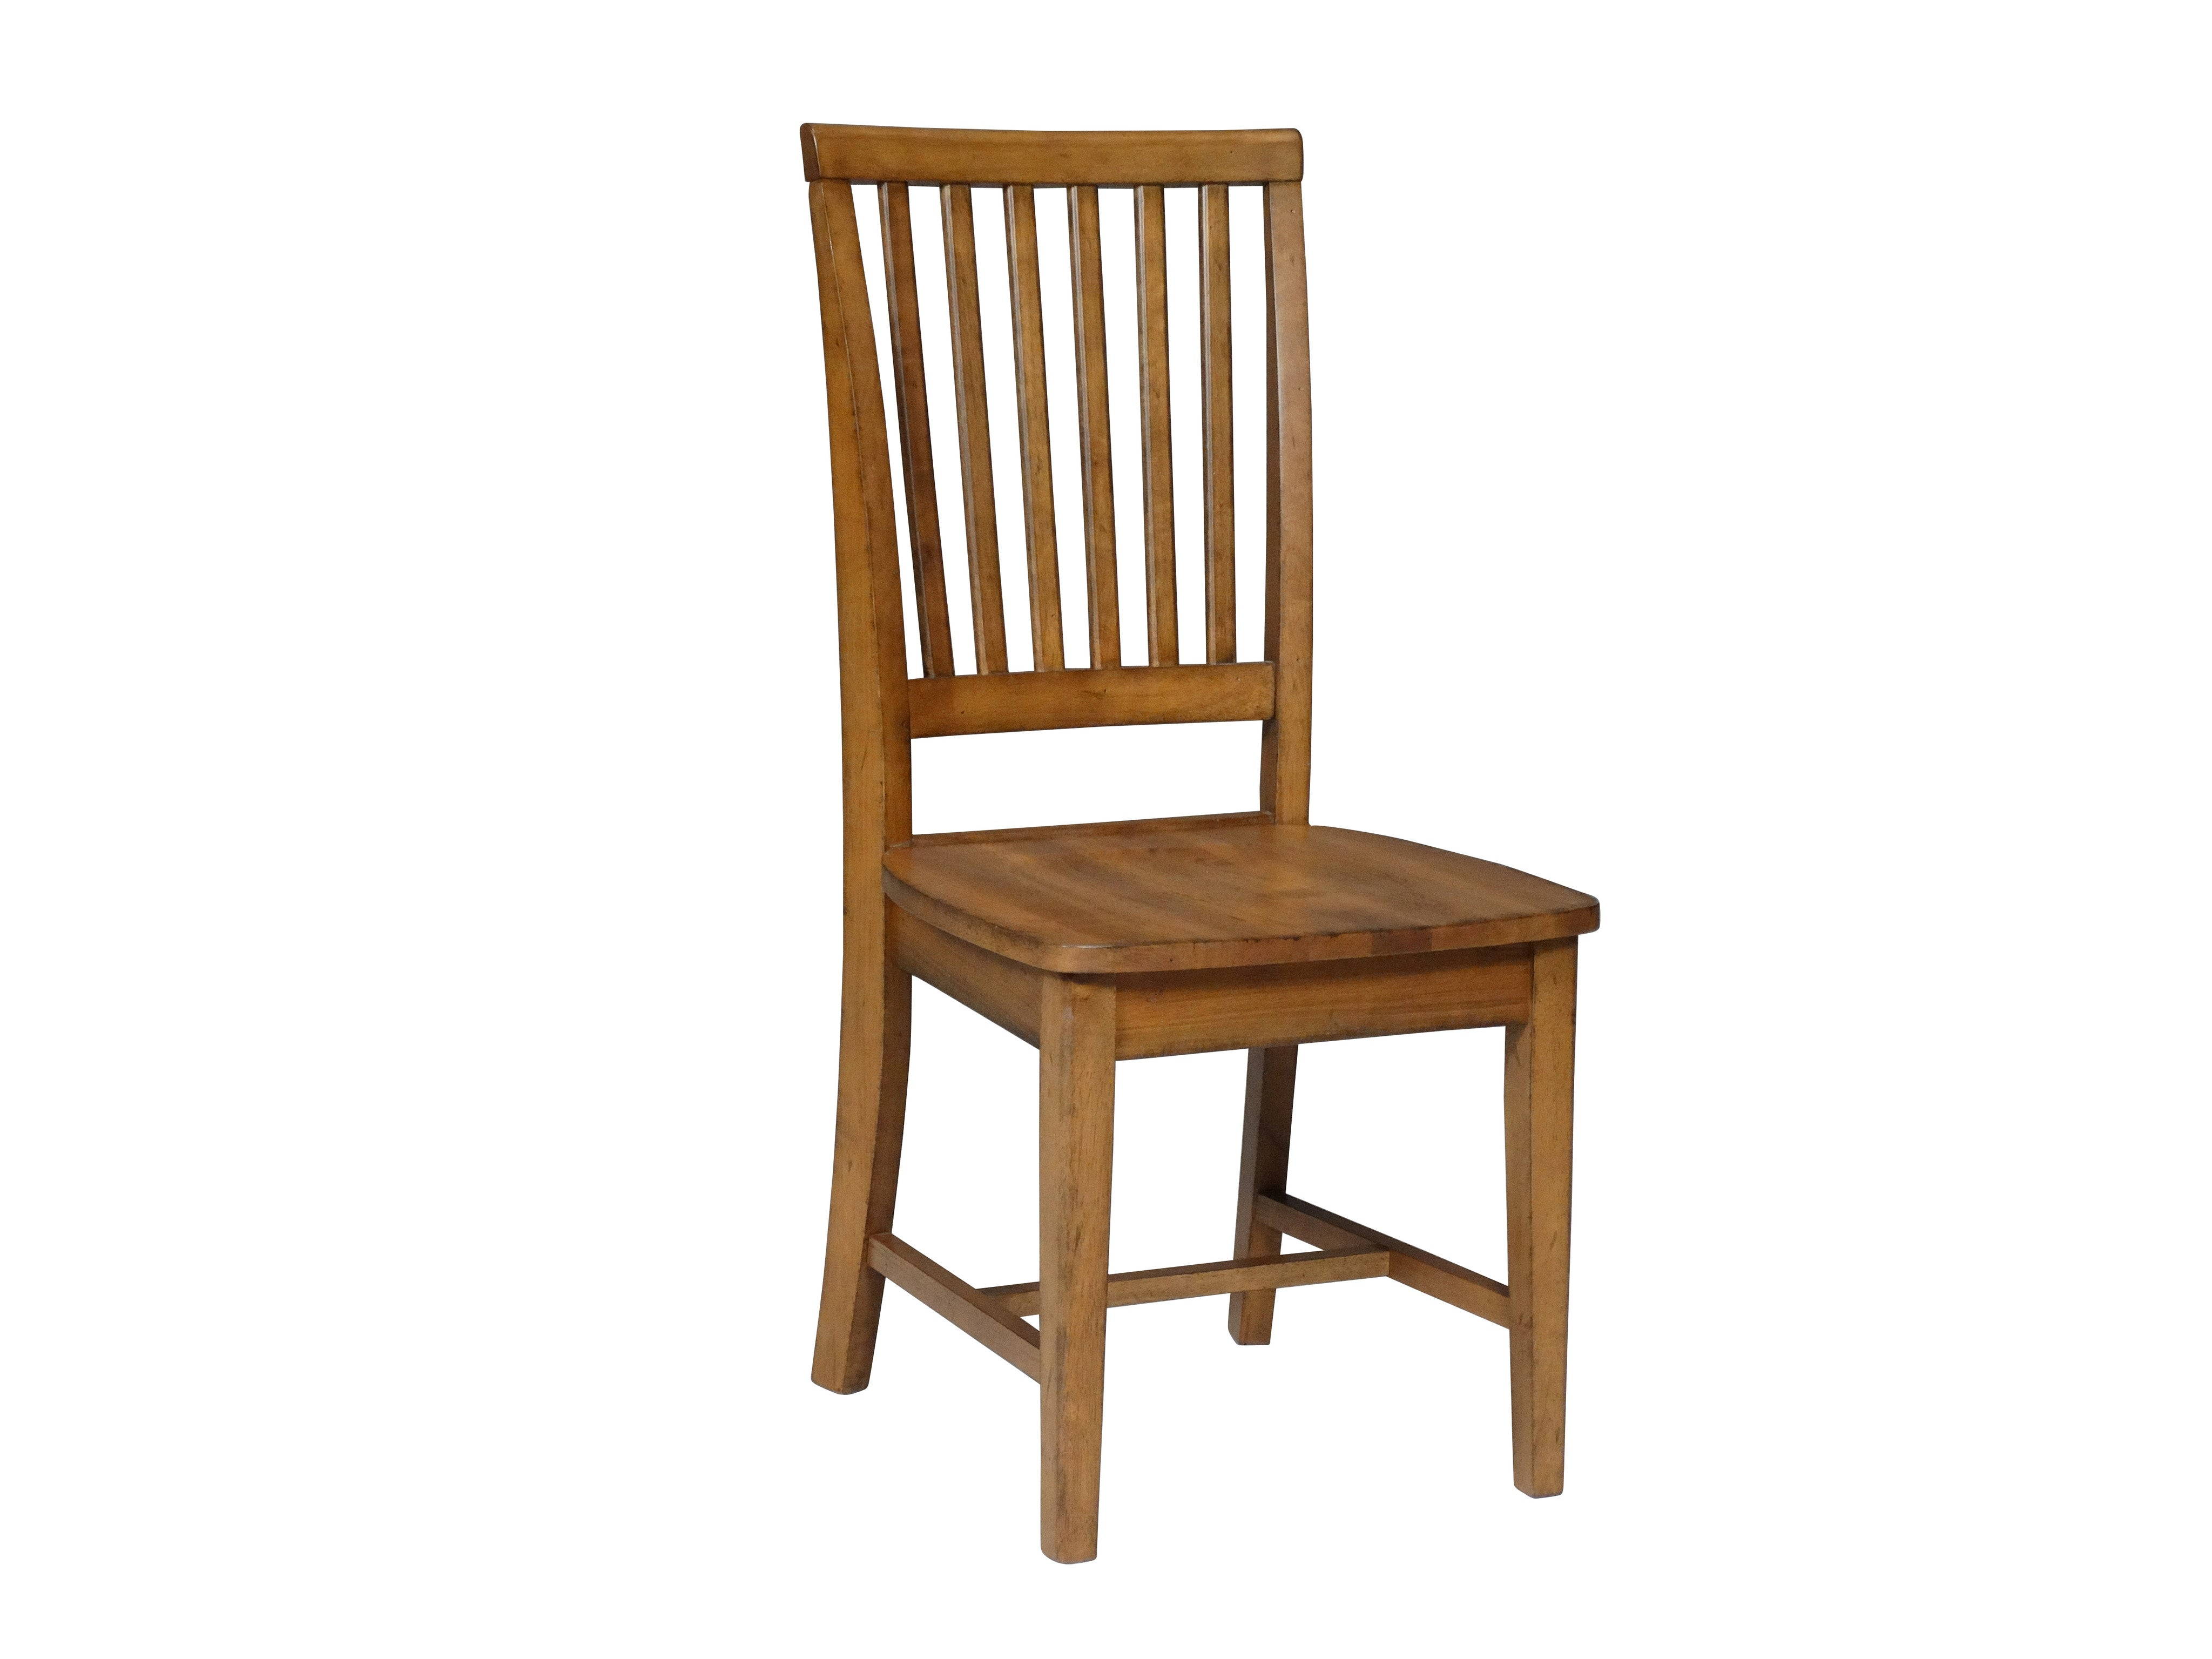 Mission Hardwood Dining Side Chair 2 Pack Free Shipping  : C59 265 from unfinishedfurnitureexpo.com size 4096 x 3072 jpeg 520kB